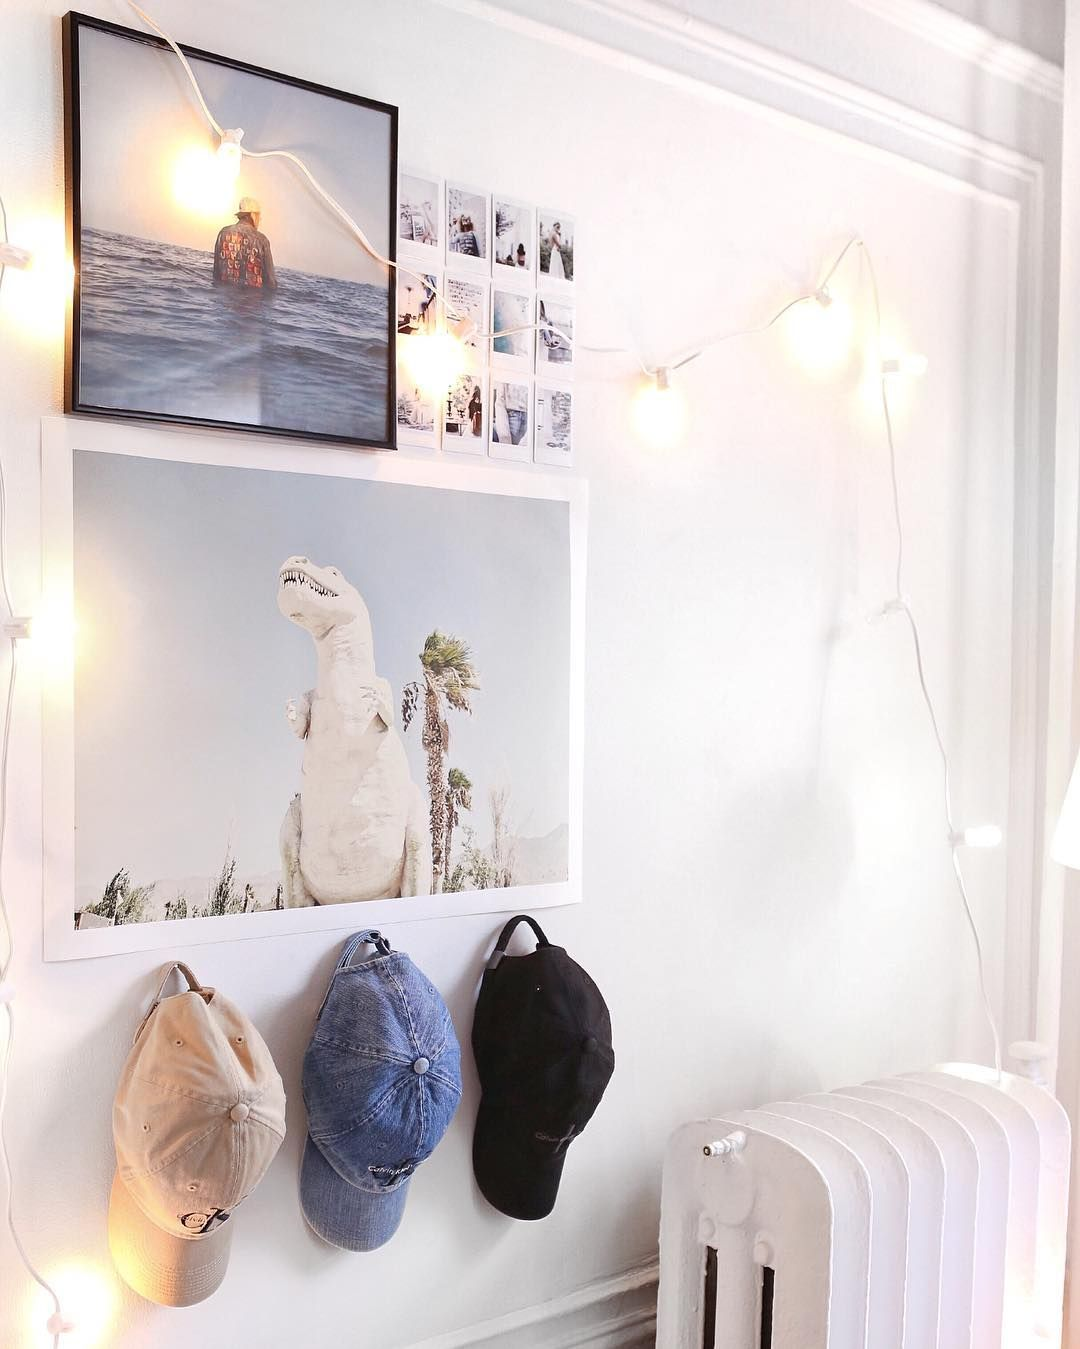 Tumblr Room Wall Decor Delaney Poli Delaneypoli Instagram Photos And Videos